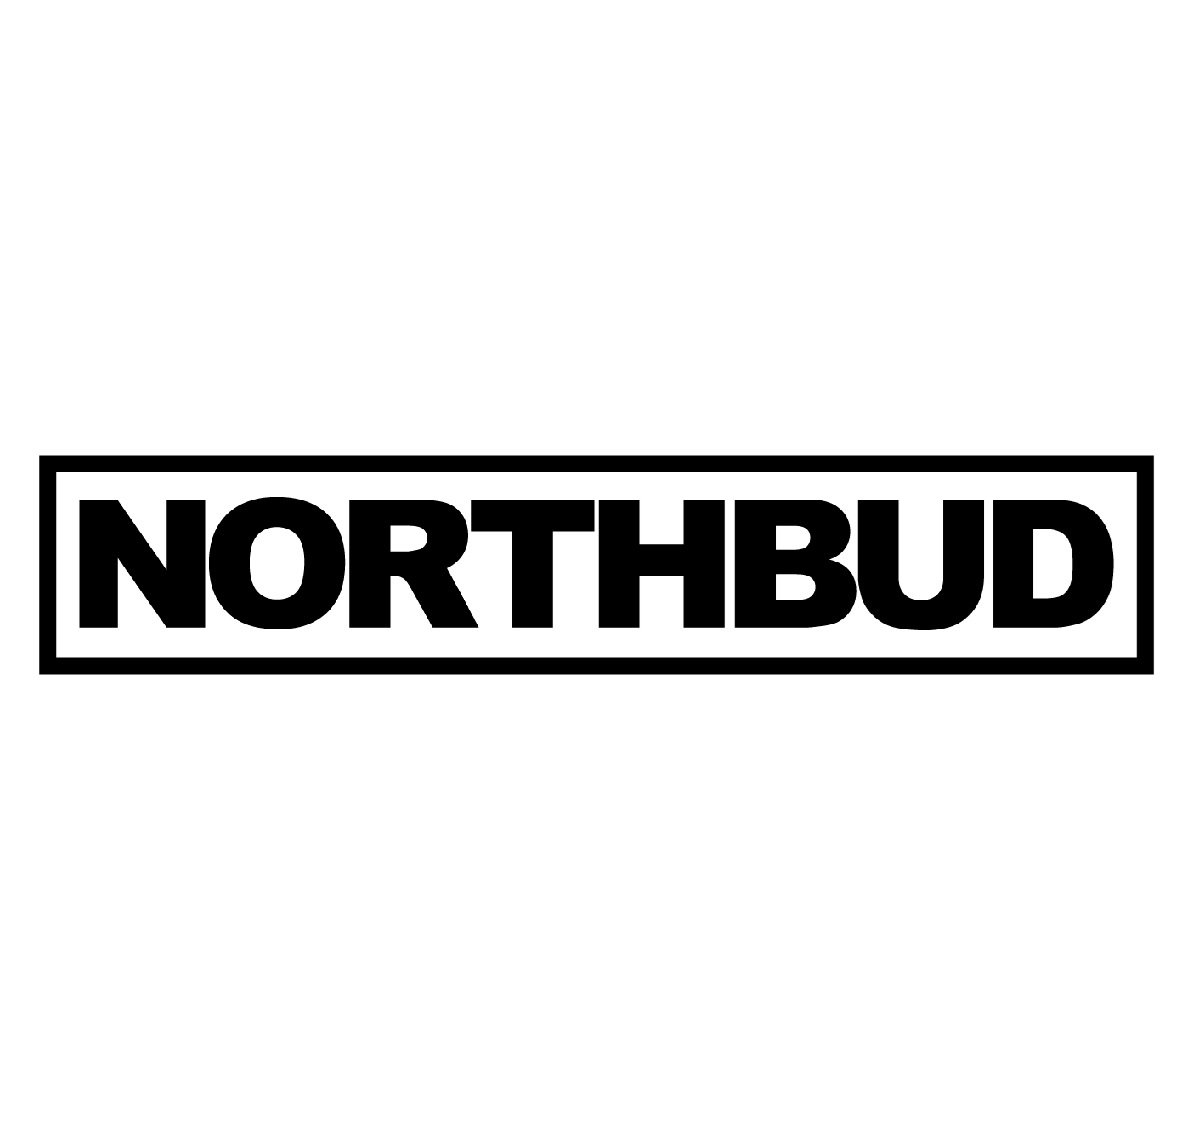 North Bud Farms Launches its NORTHBUD Branded Products in Nevada, USA